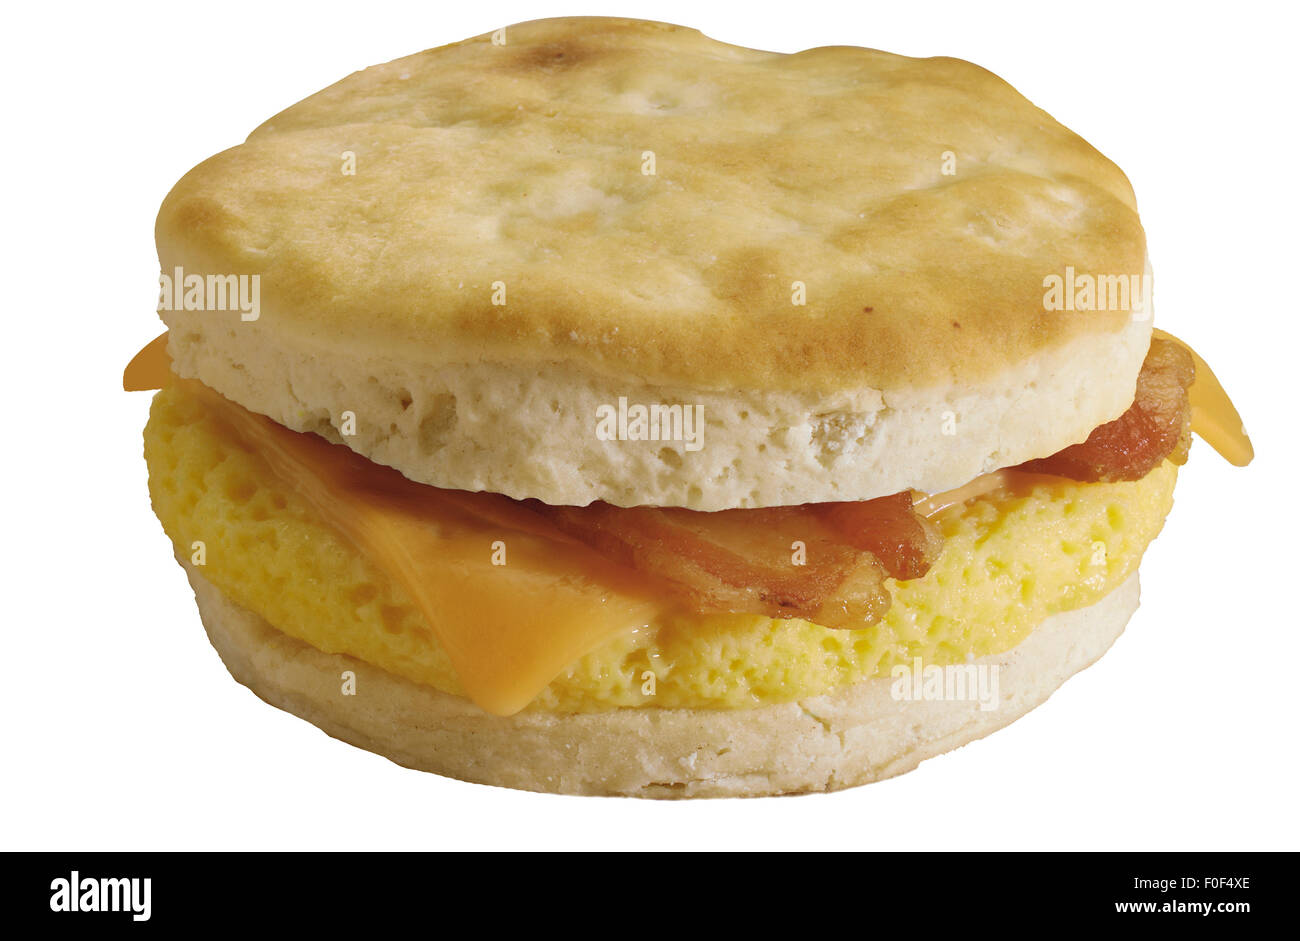 Breakfast Sandwich, Biscuit, Cheese, Scrambled Egg, Bacon - Stock Image